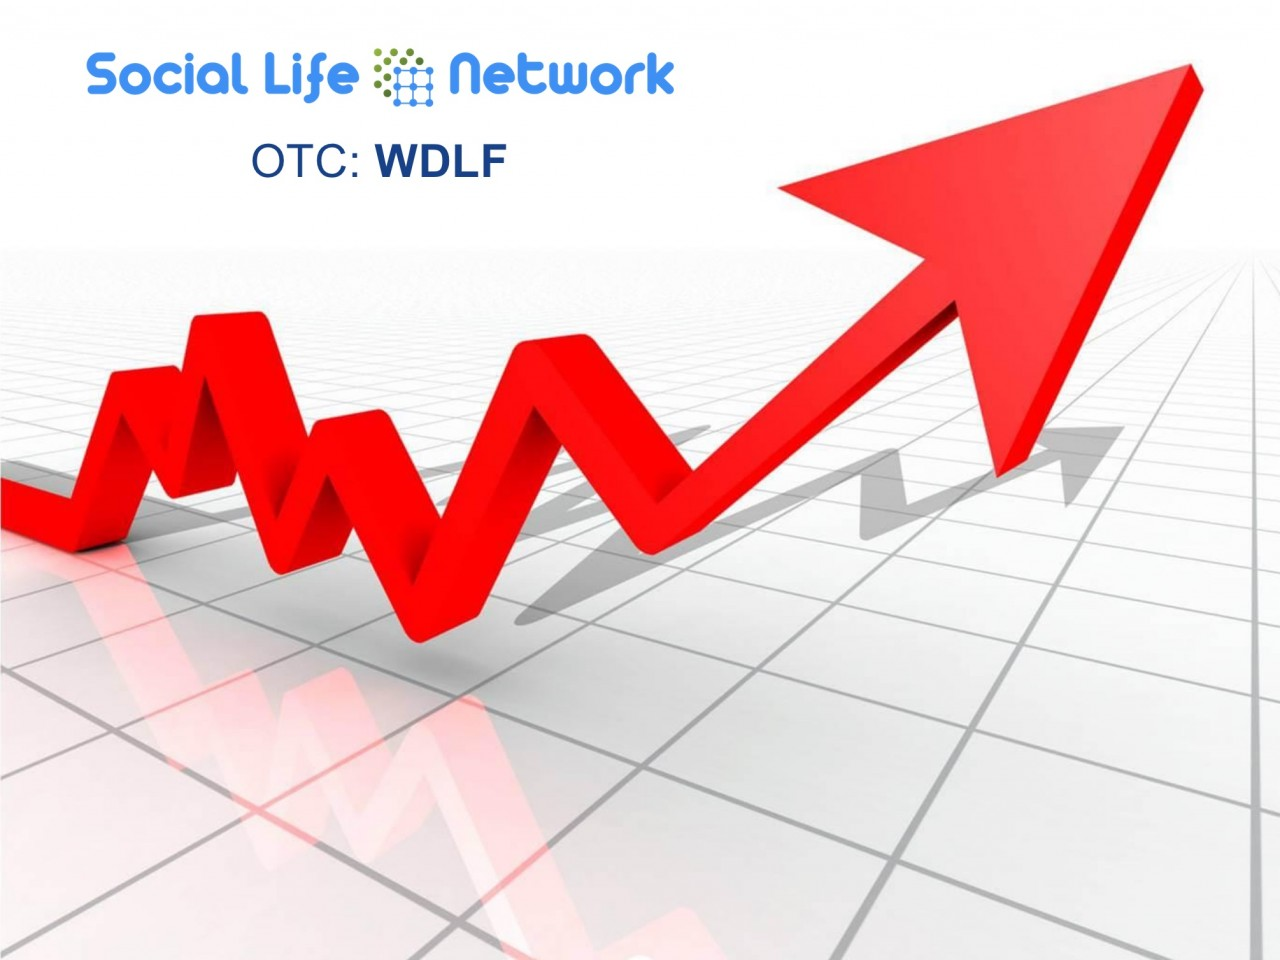 Social Life Network to Host March 31, 2020 Shareholder Call for 10-K and Q1 News Updates